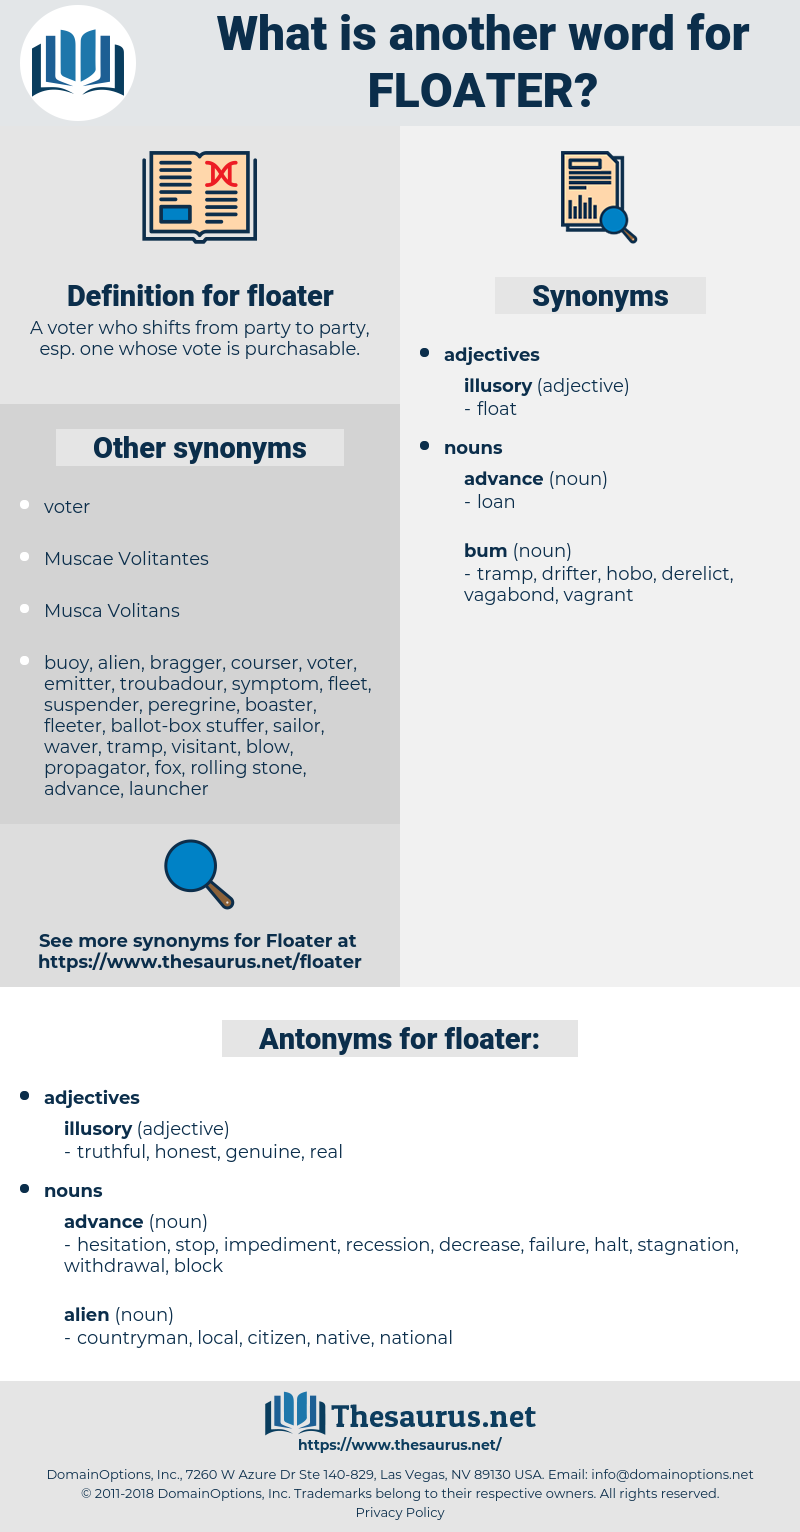 floater, synonym floater, another word for floater, words like floater, thesaurus floater